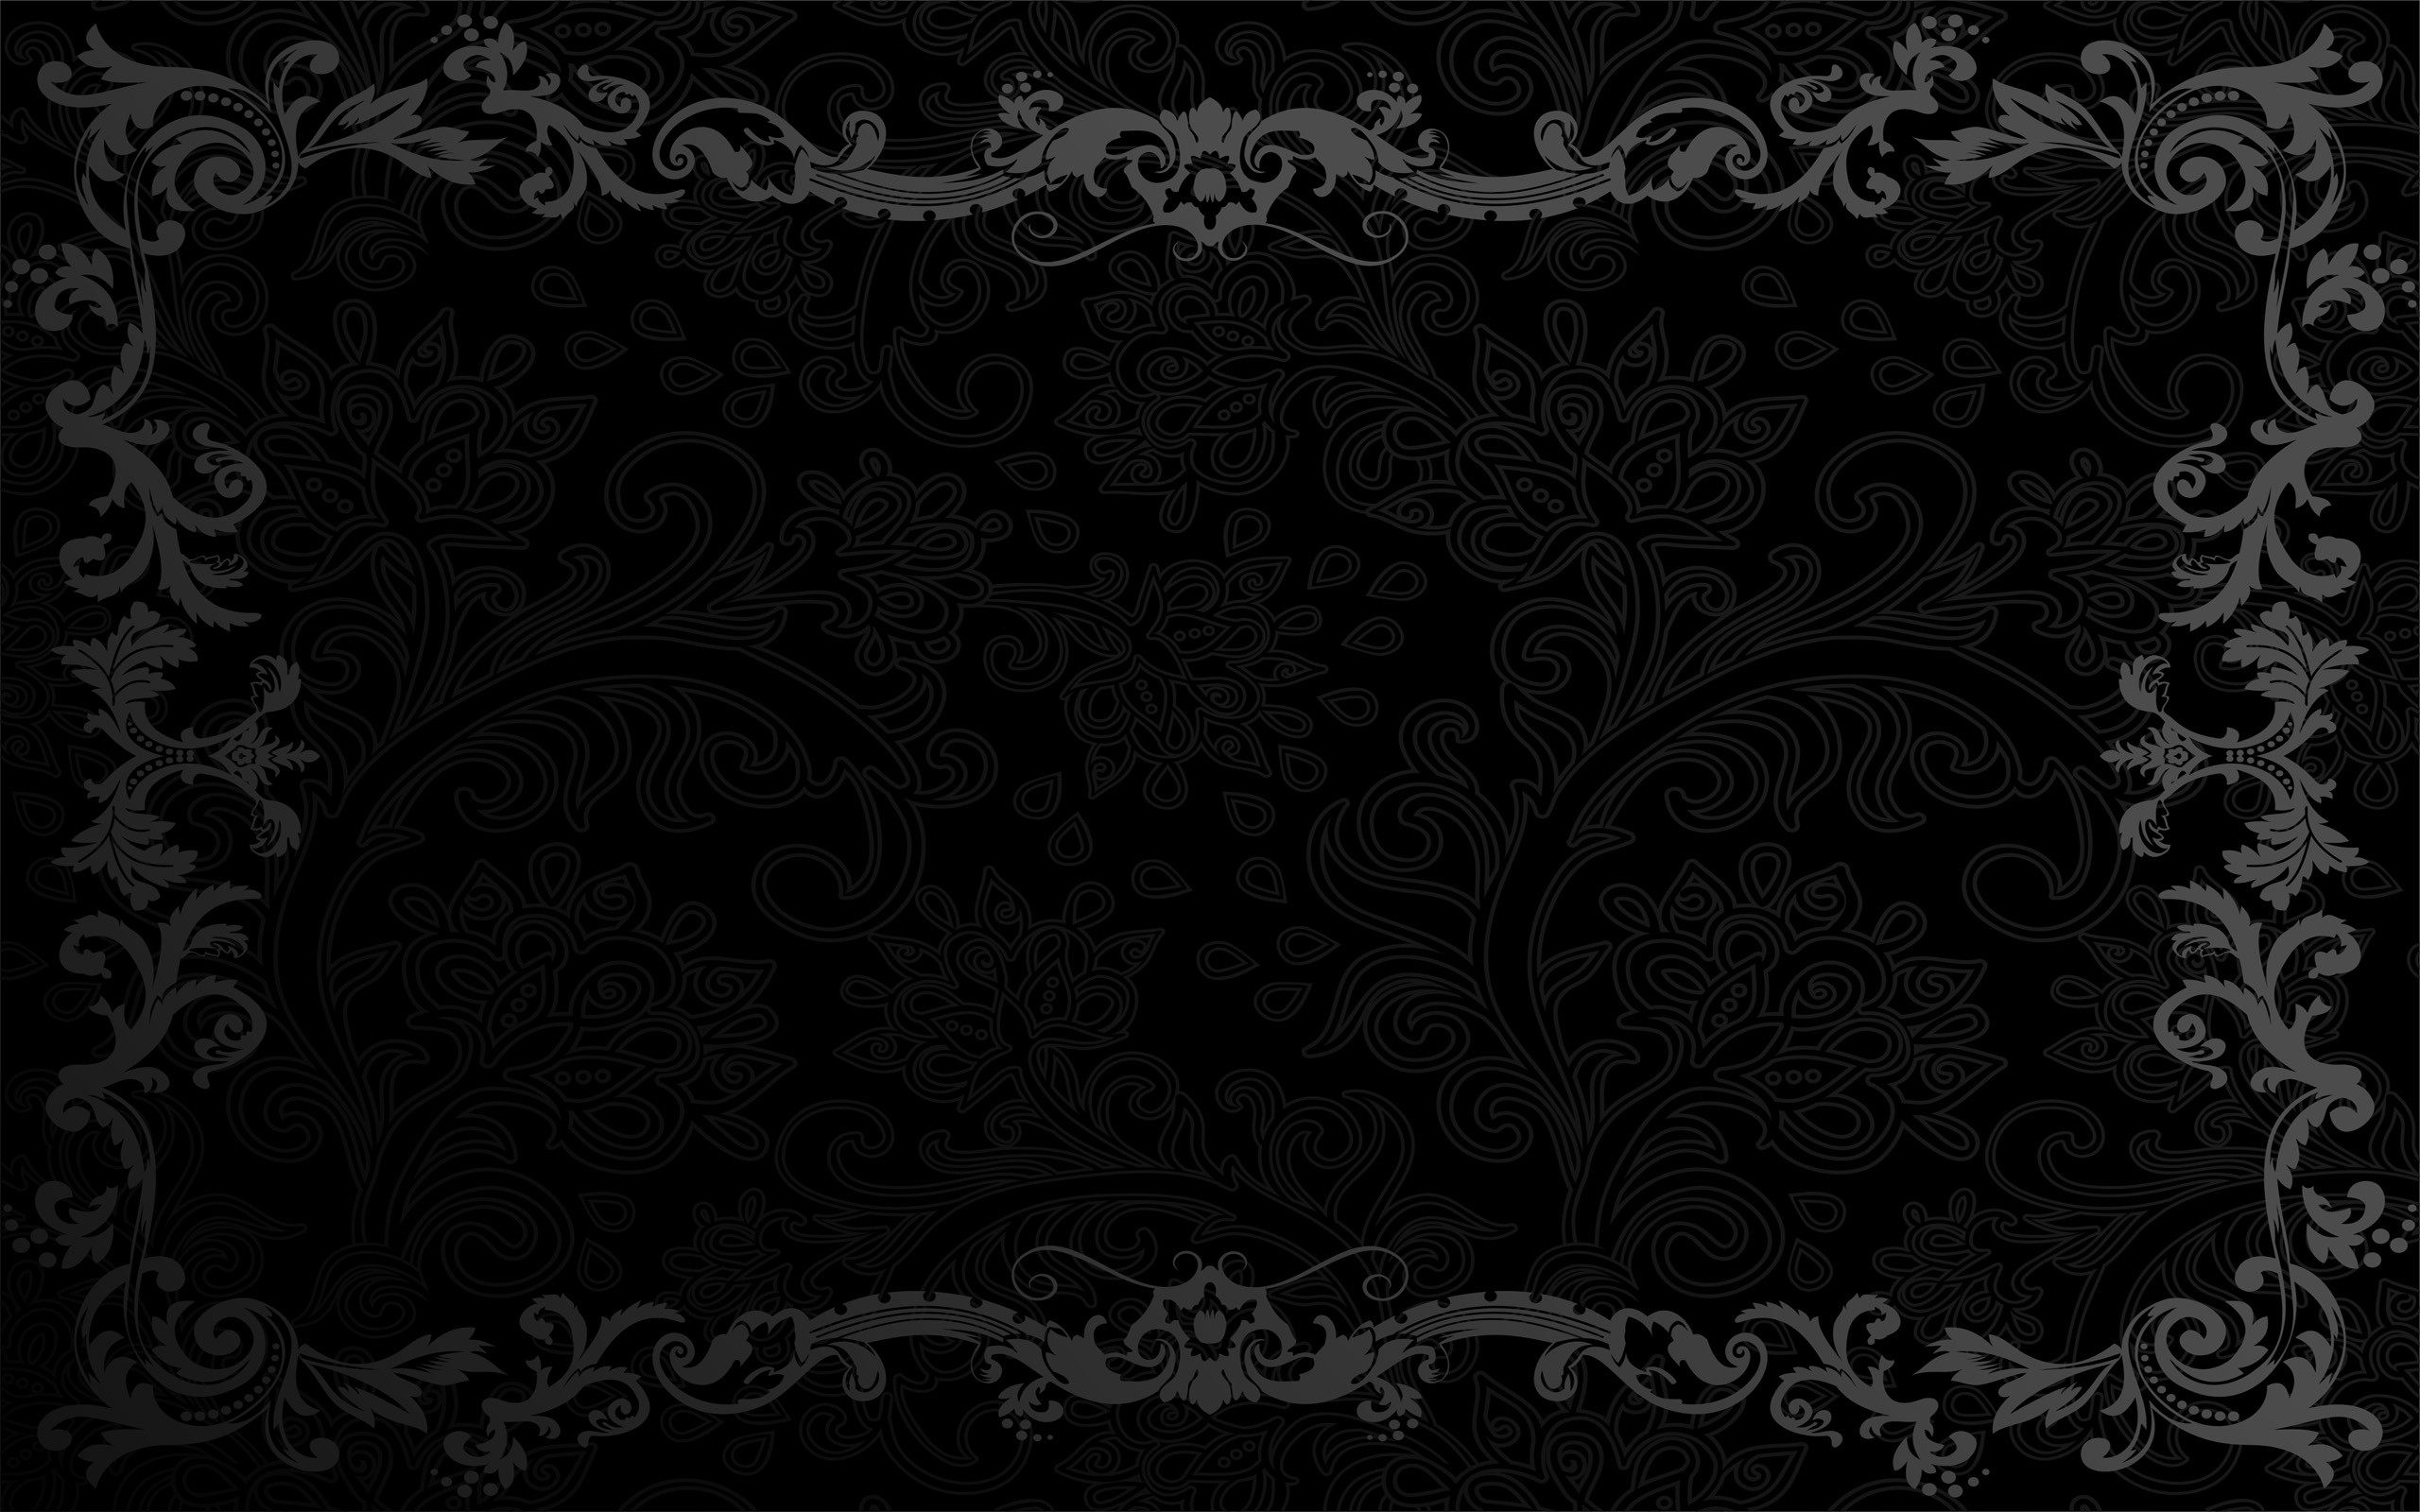 2560x1600 Frame-Texture-Black-Wallpaper-HD-For-Desktop-Mobile-456299384845